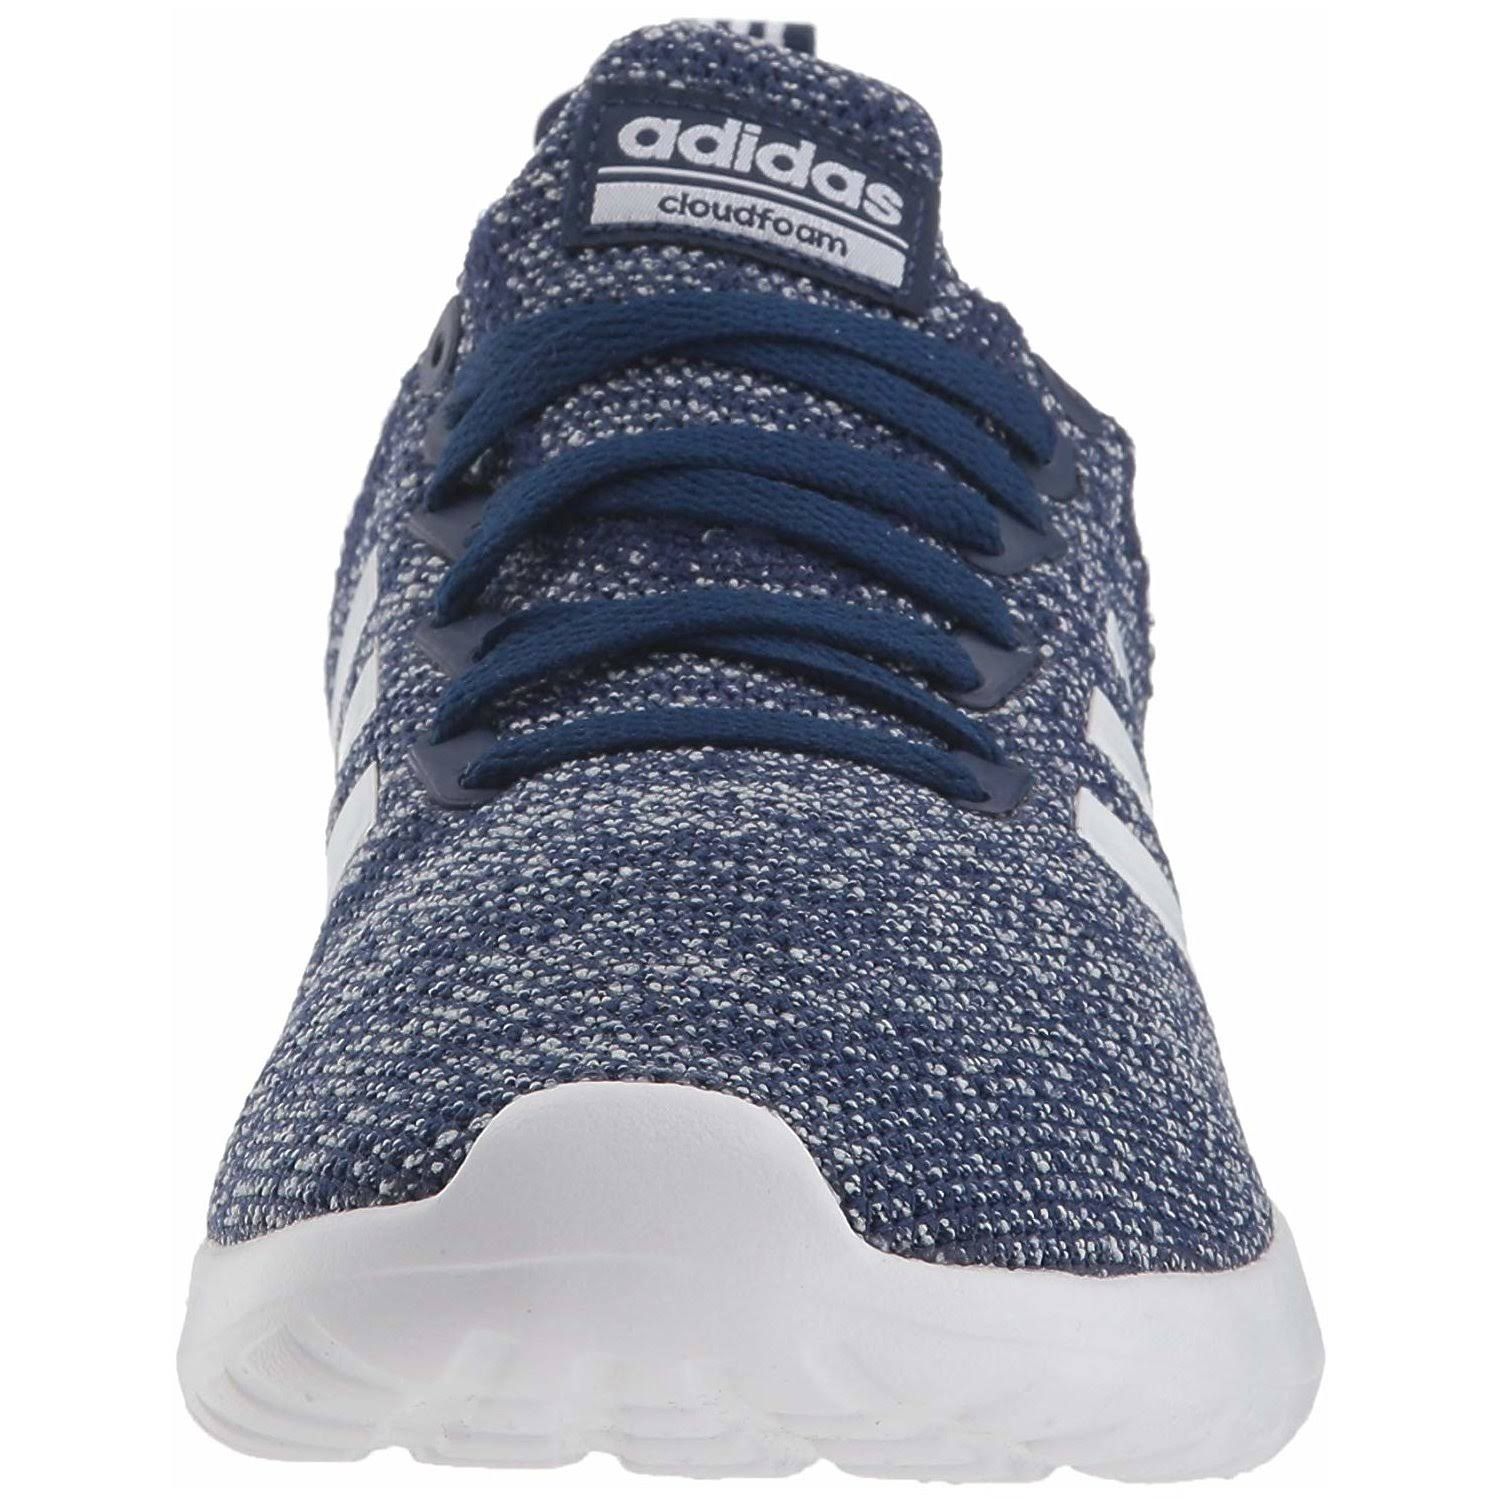 Mens Shoes Lite Navy Byd 10 Adidas Racer Running Blue Yzxn6v